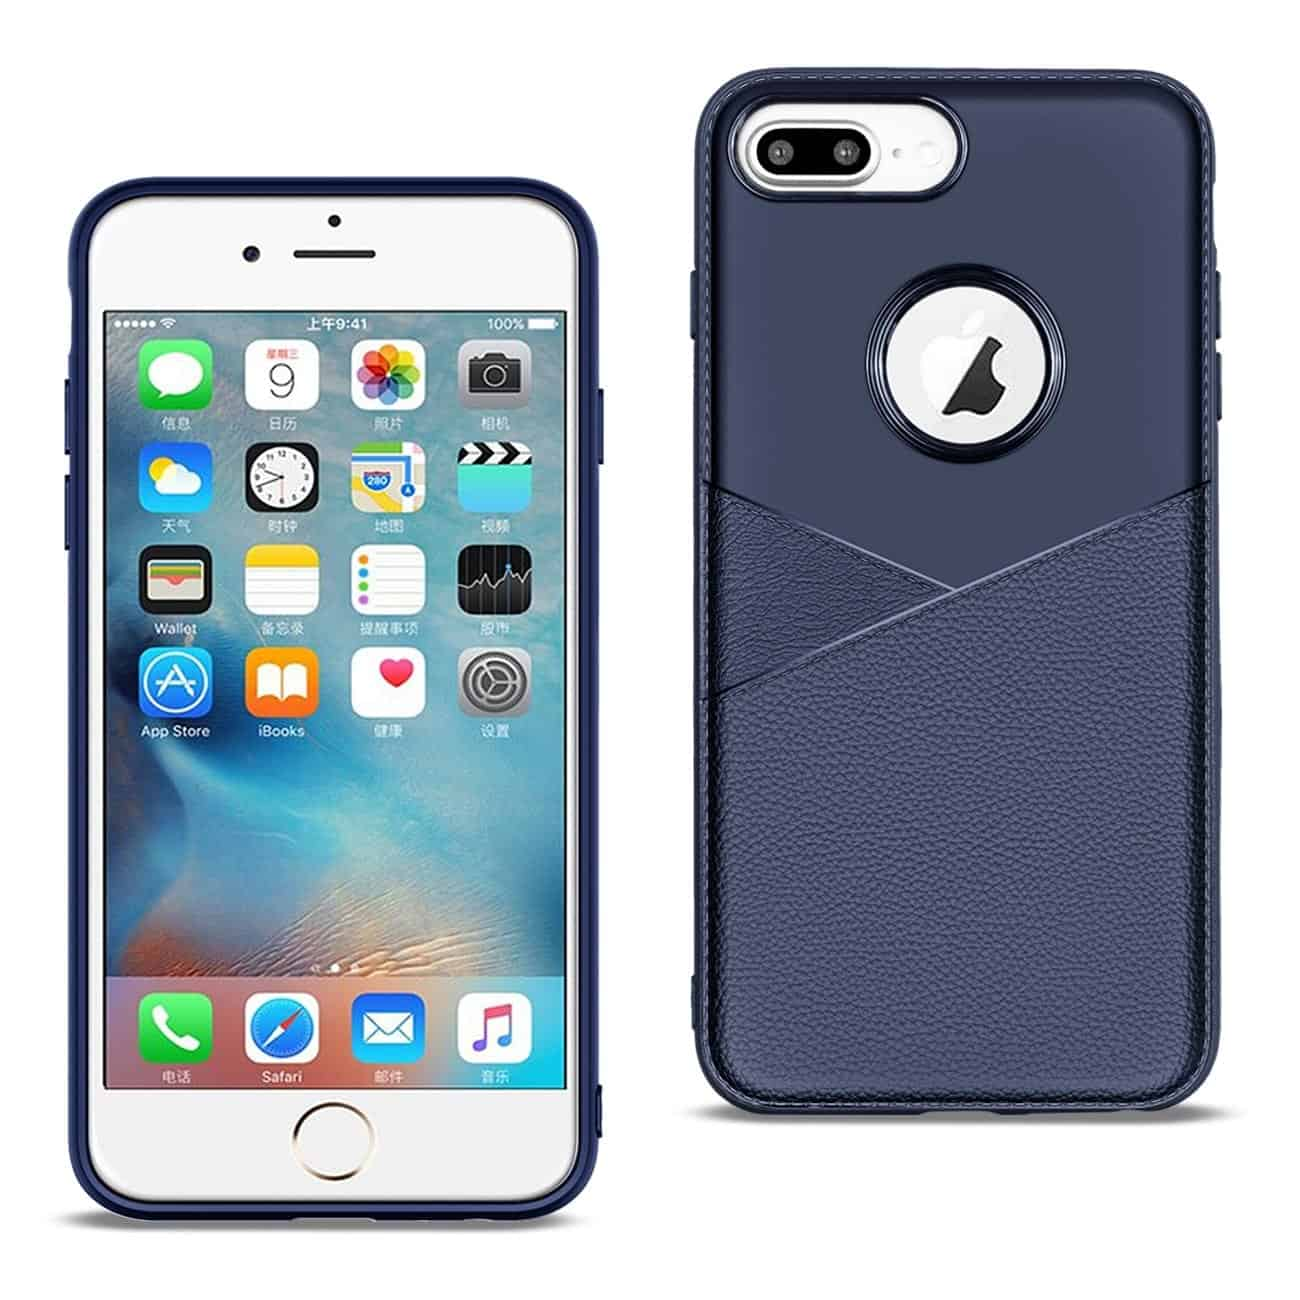 Apple iPhone 8 Plus Good quality phone case in Blue